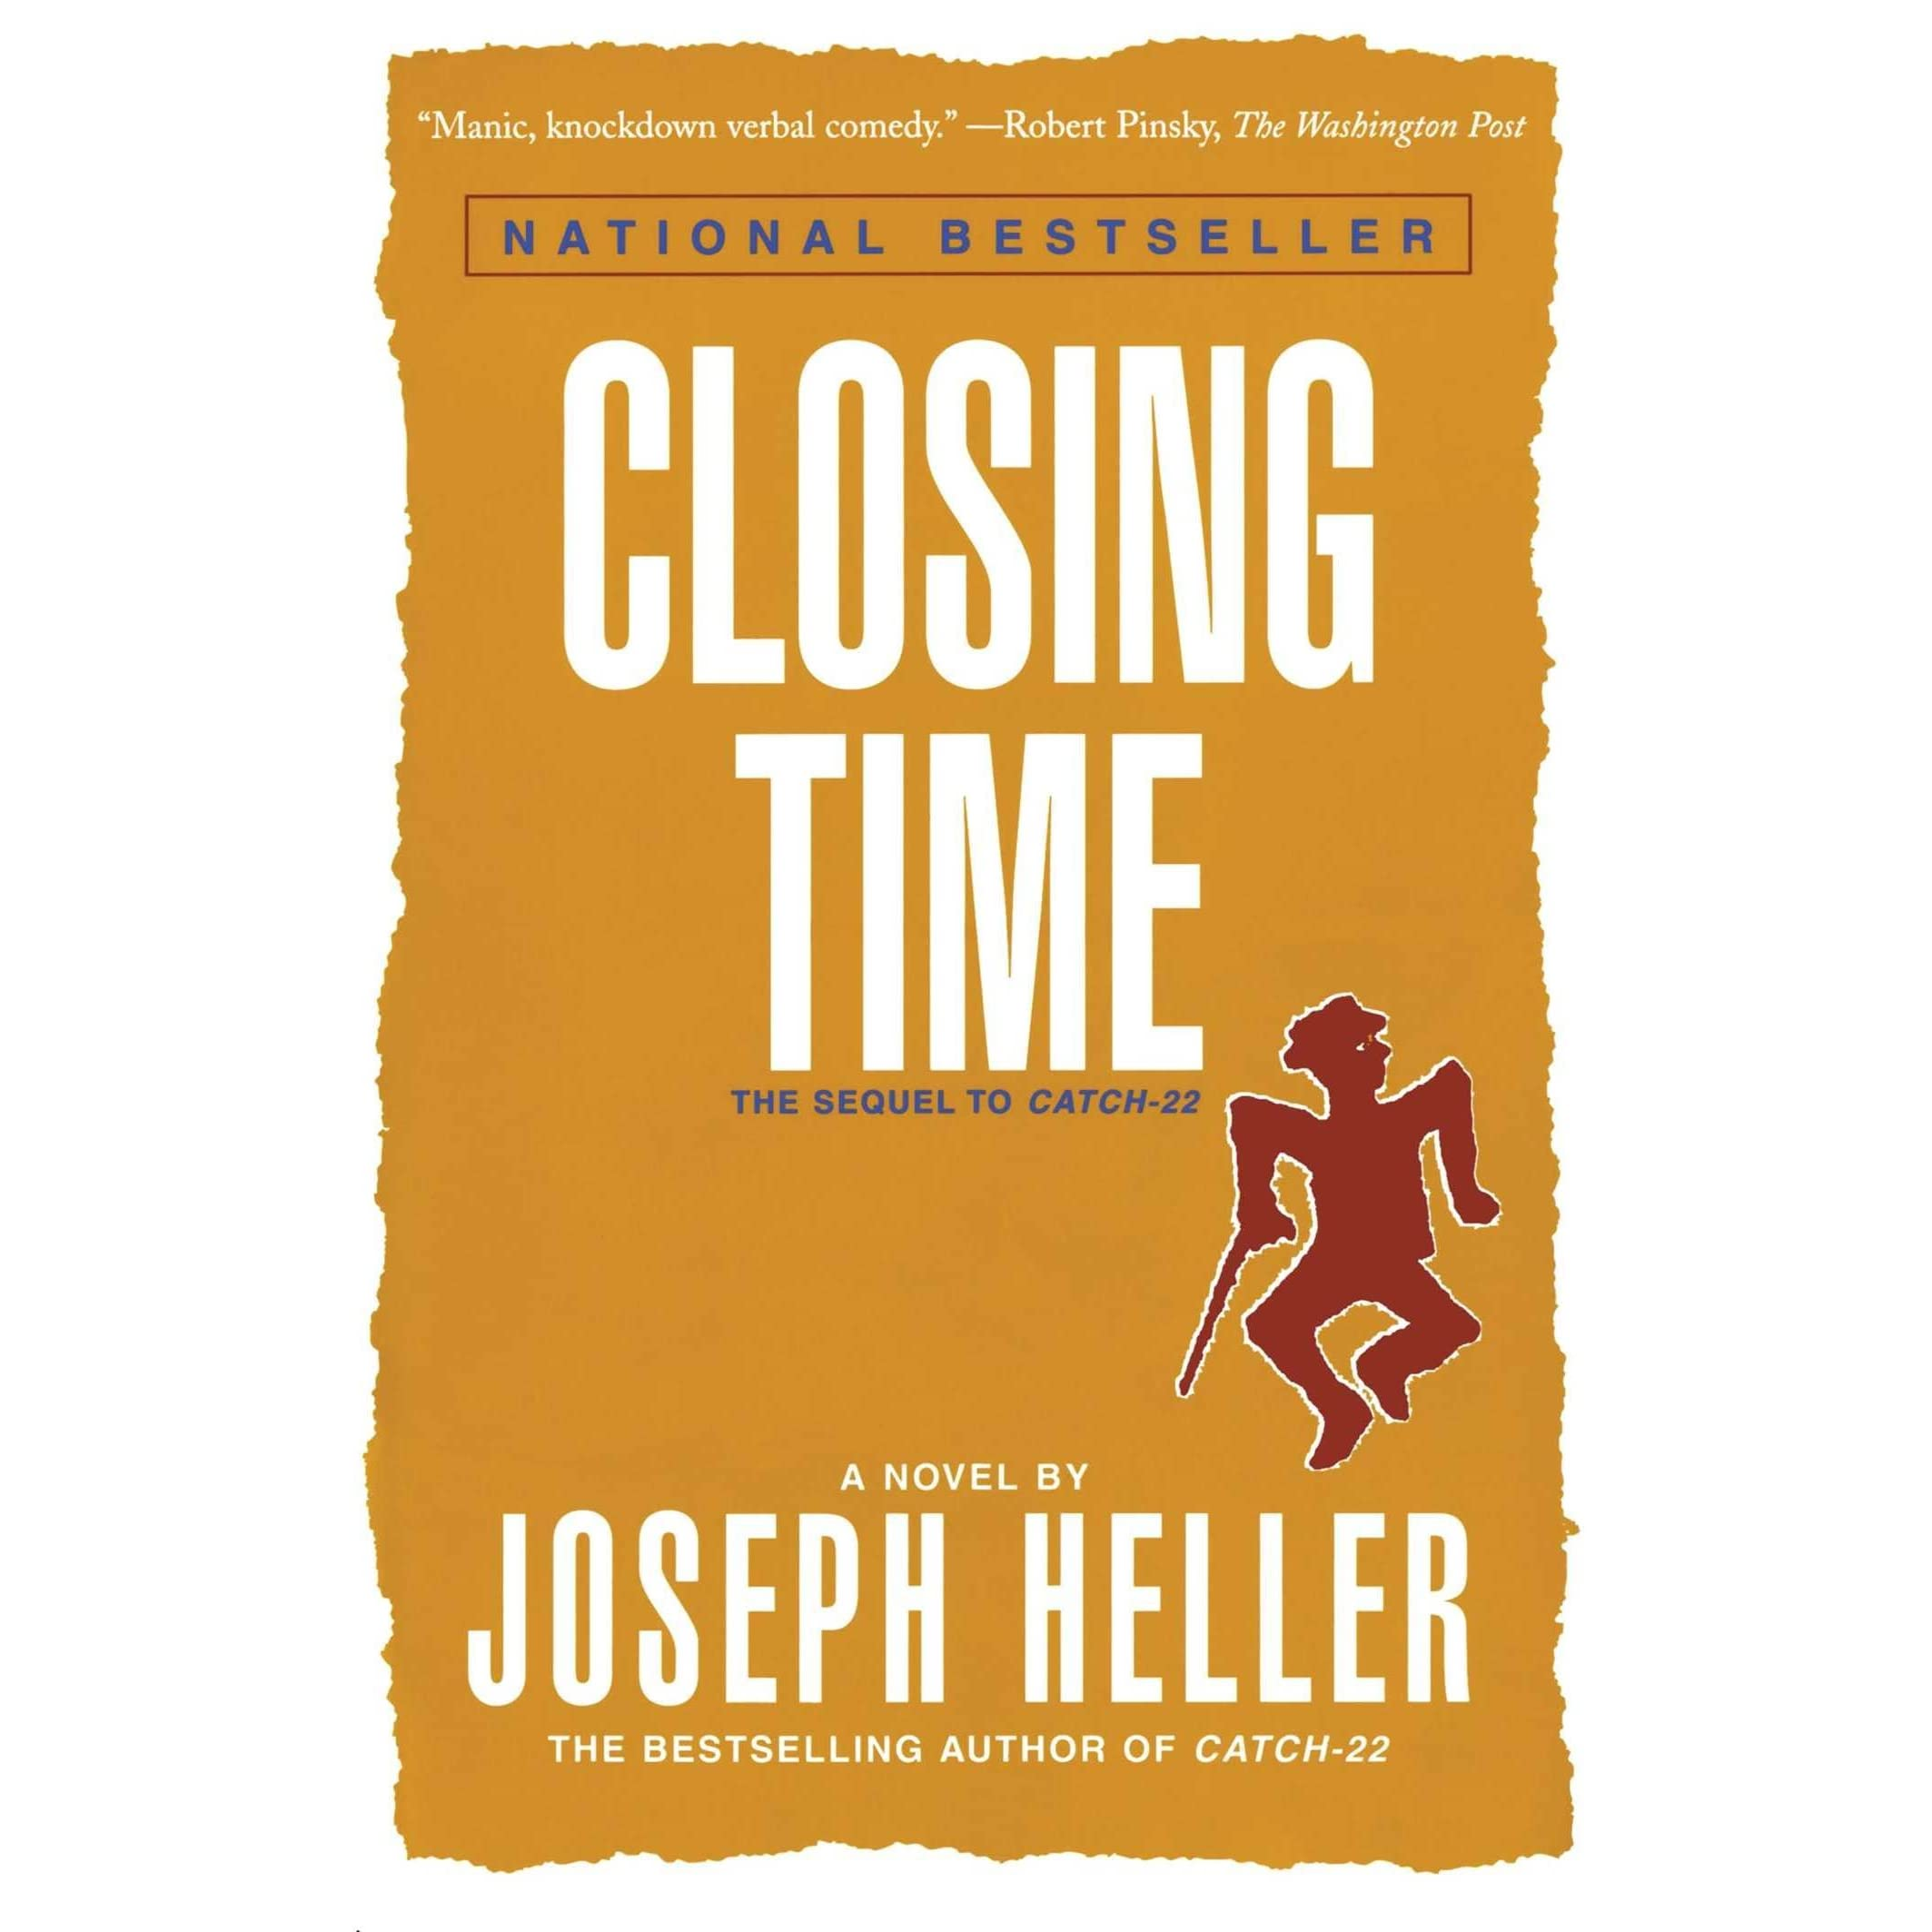 Closing Time (Catch-22, #2) by Joseph Heller